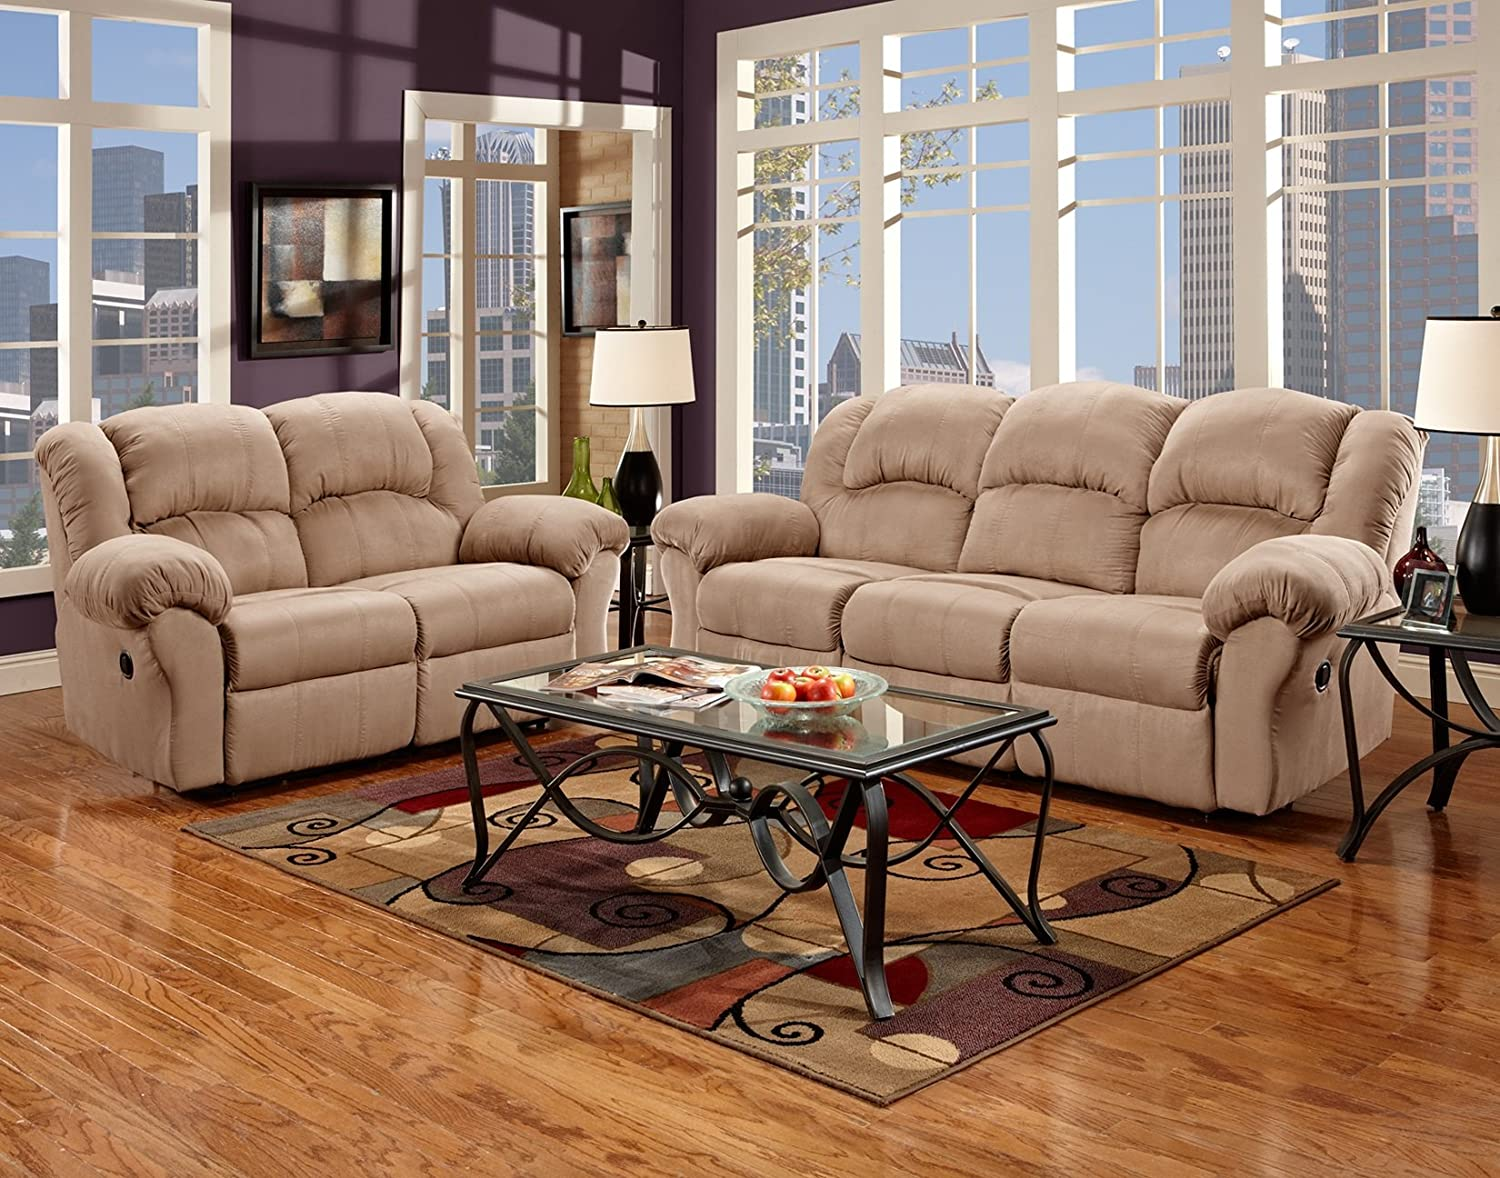 Roundhill Furniture Sensation Microfiber Dual Reclining Sofa Loveseat Set - Camel Tan